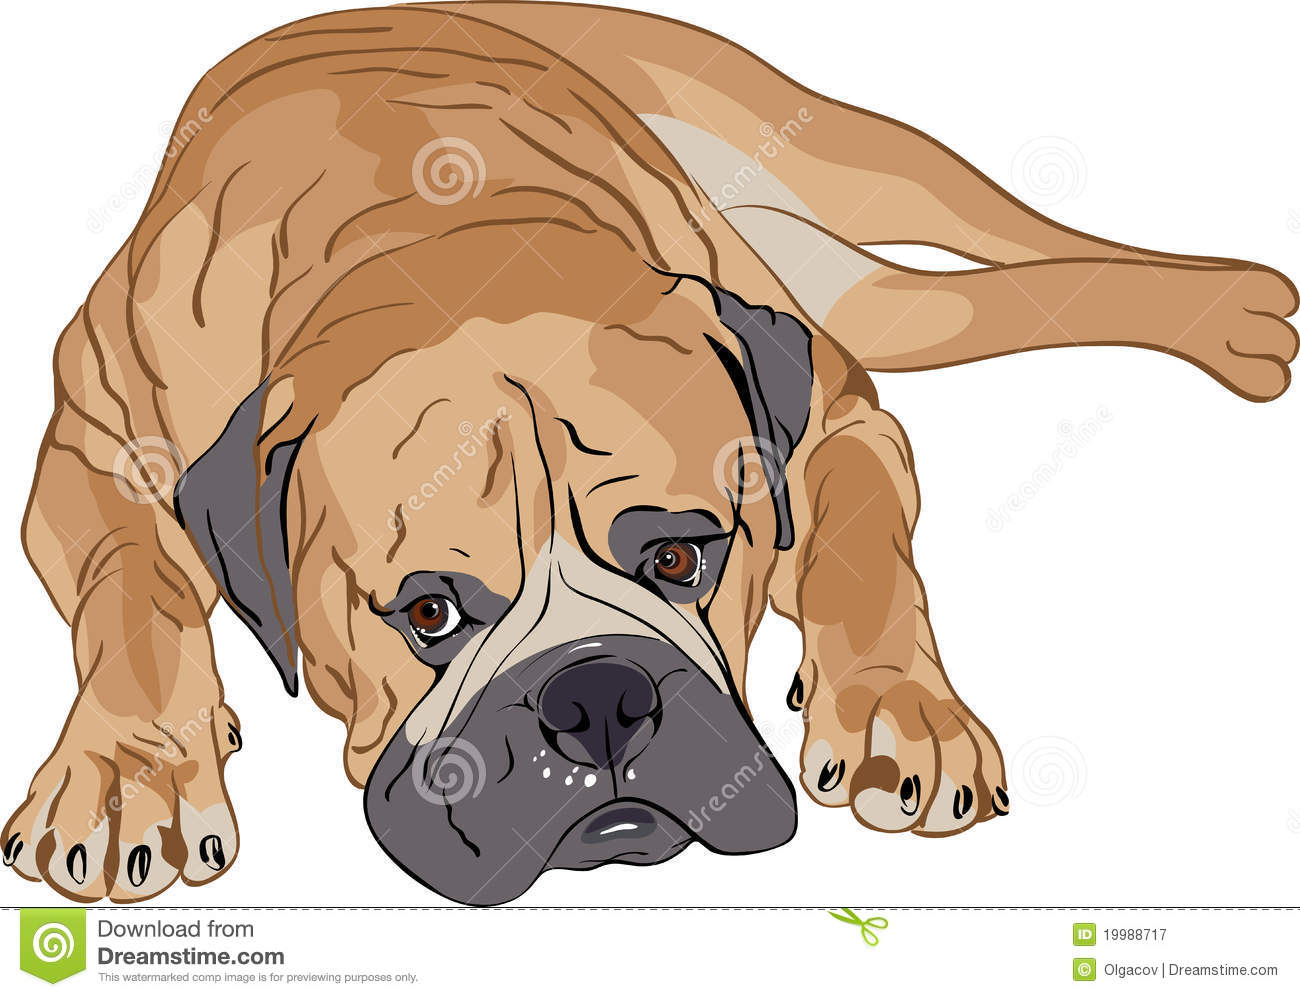 Bullmastiff clipart #14, Download drawings